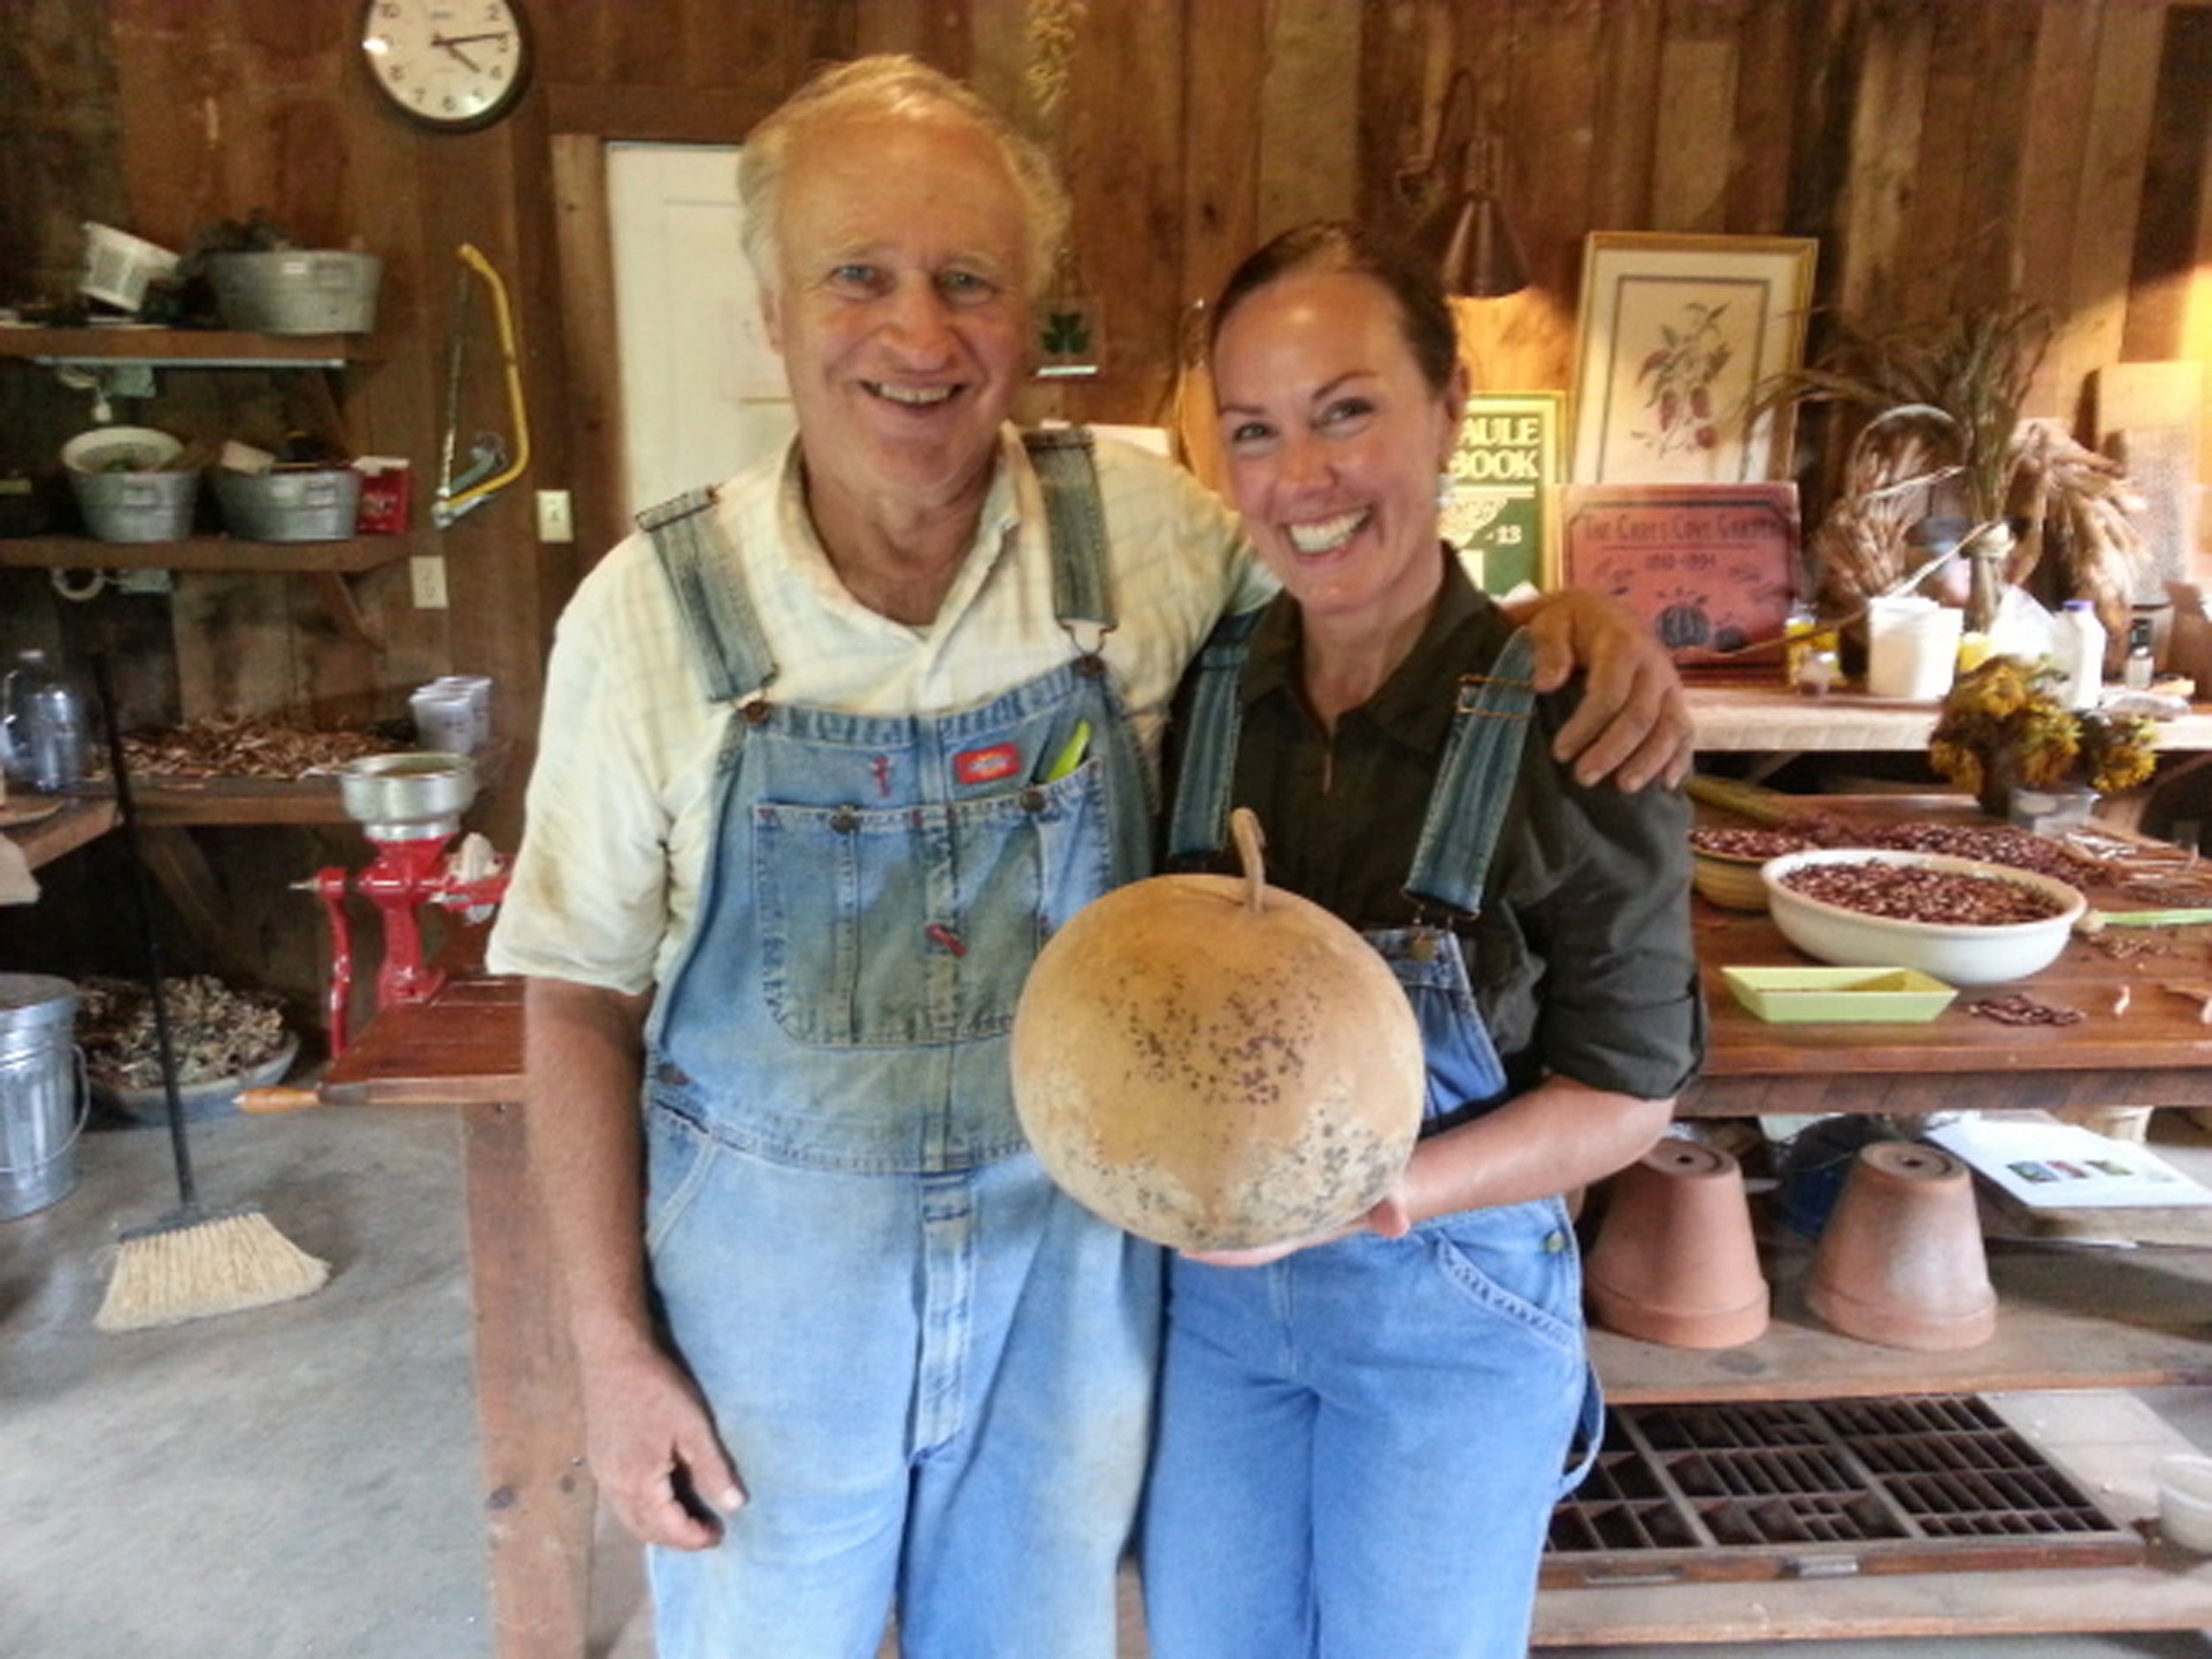 John Coykendall and Amy Campbell pictured in the Garden shed at Black Berry Farm in 2015. They worked together in the garden in 2007.